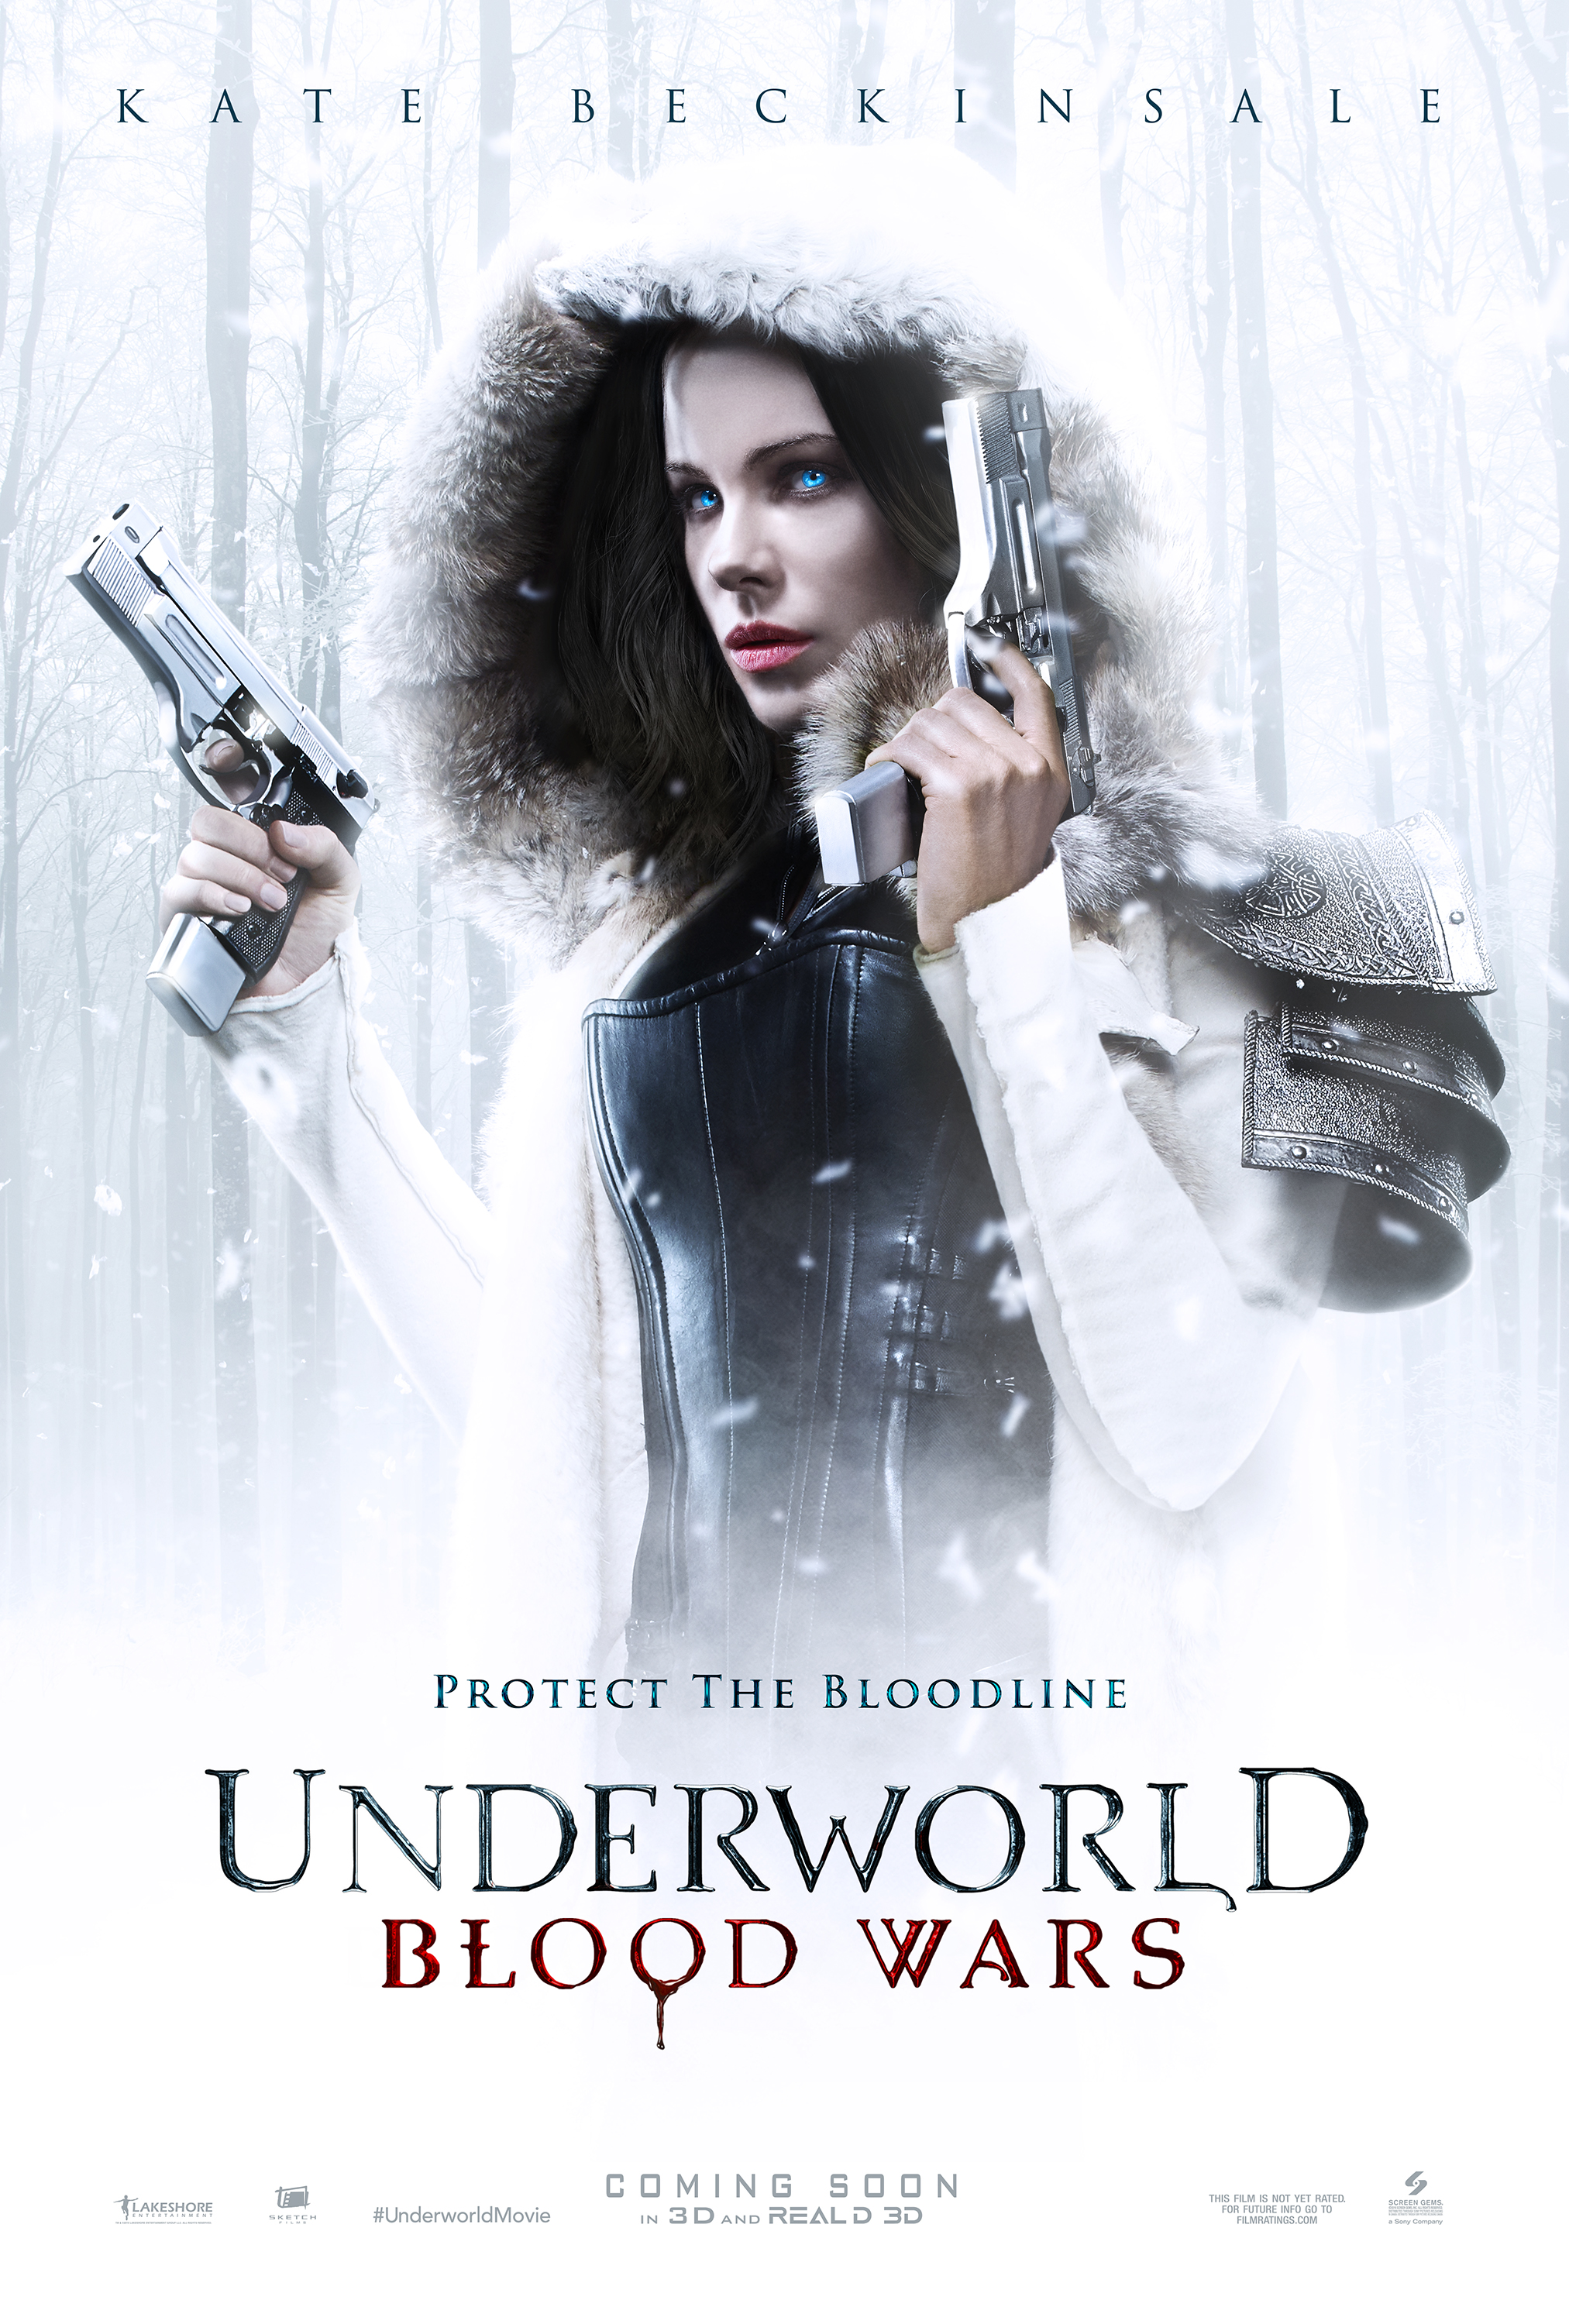 Underworld Blood Wars - Teaser Trailer